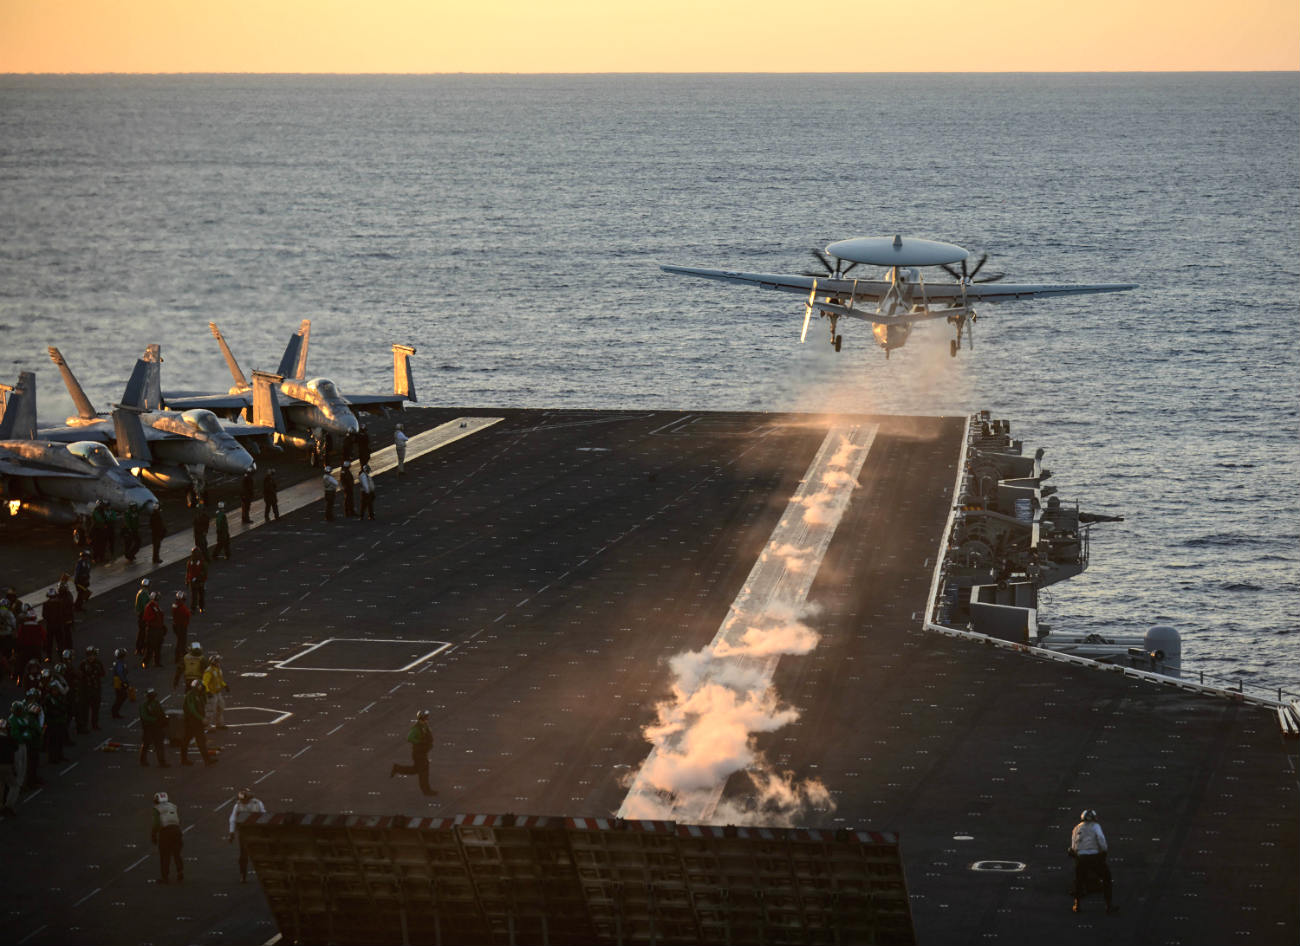 E-2 Hawkeye takes off sunset